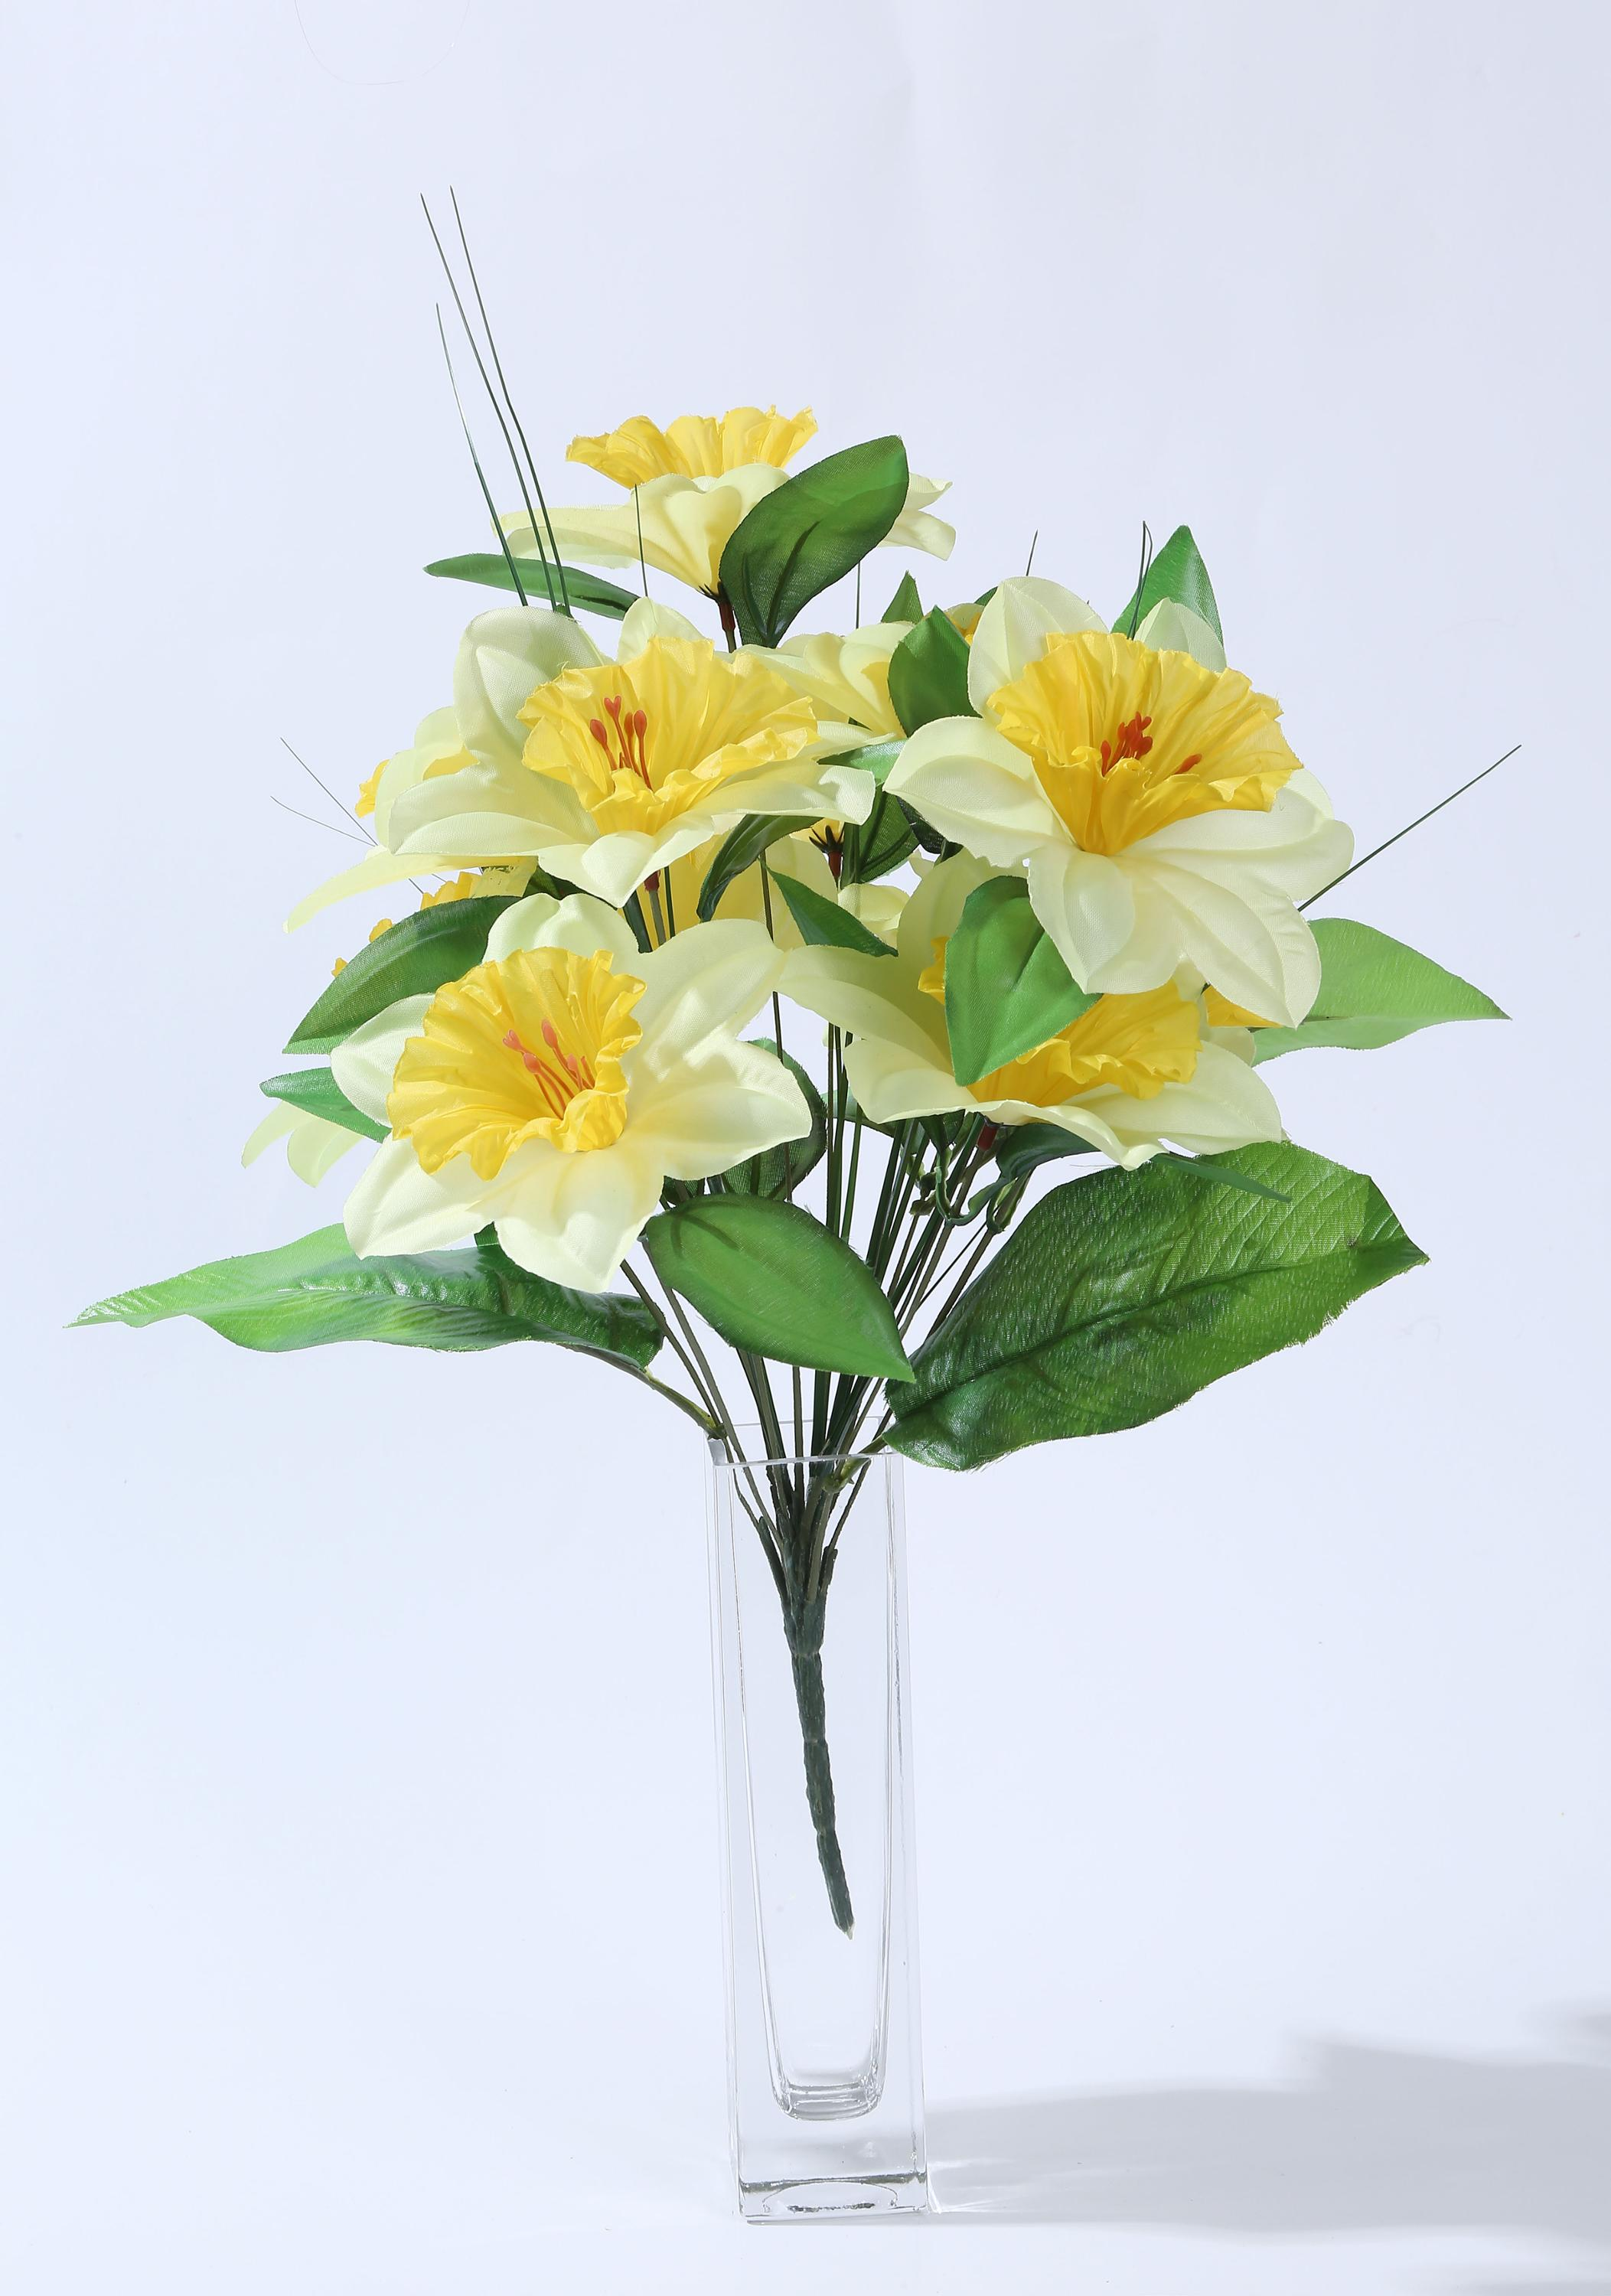 Poland style artificial funeral decoration flowers 12 heads daffodil poland style artificial funeral decoration flowers 12 heads daffodil fabric flowers wholesale izmirmasajfo